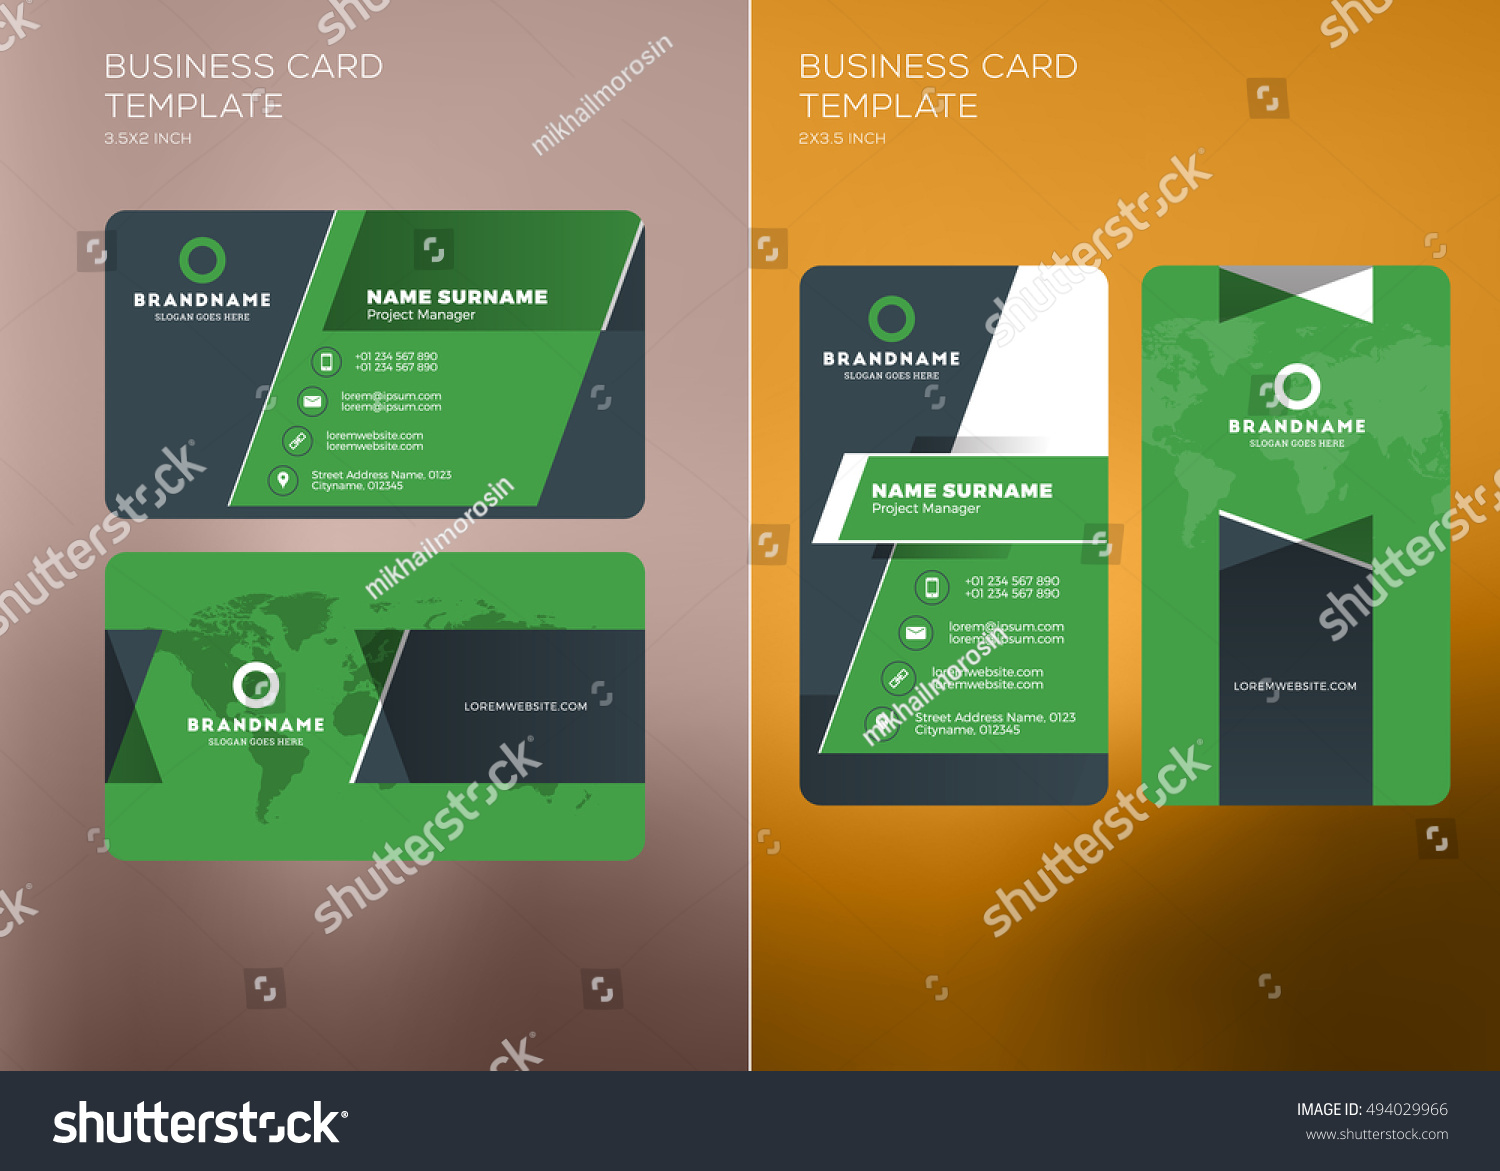 Corporate business card print template personal stock vector corporate business card print template personal visiting card with company logo vertical and horizontal fbccfo Gallery